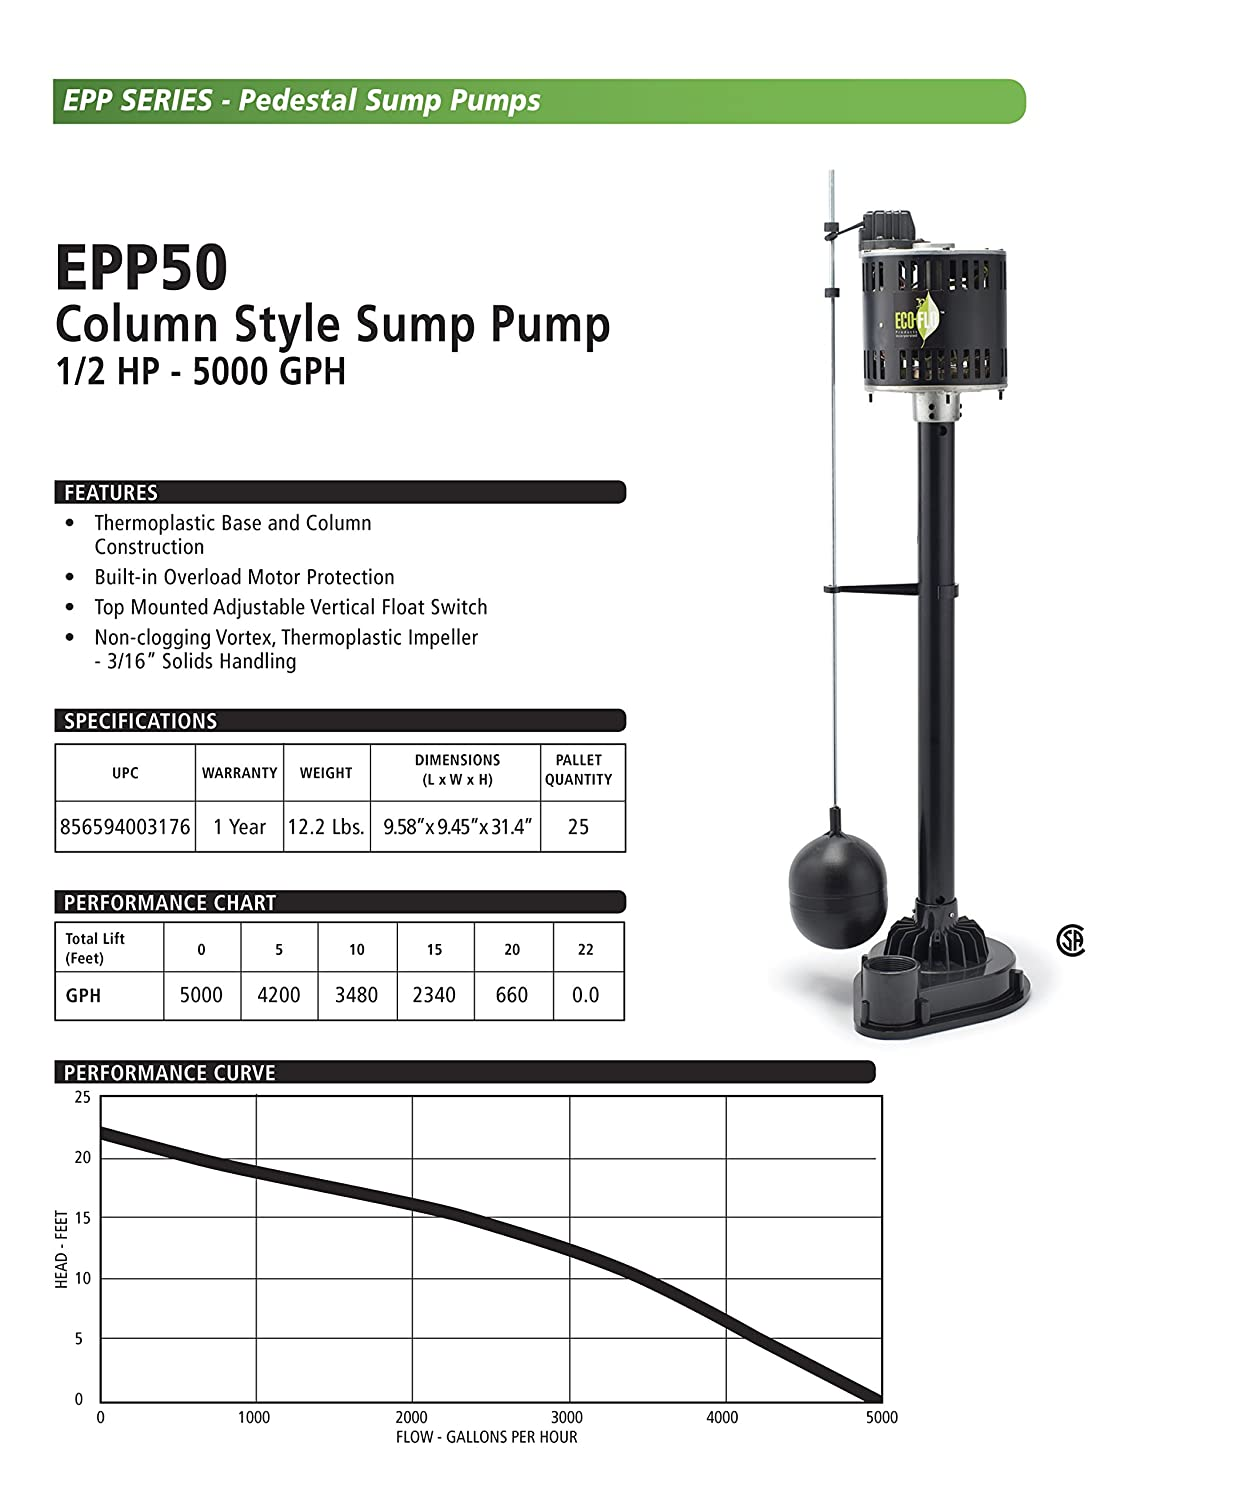 Eco Flo Products Epp50 Pedestal Sump Pump With Vertical Float Switch Wiring 1 2 Hp